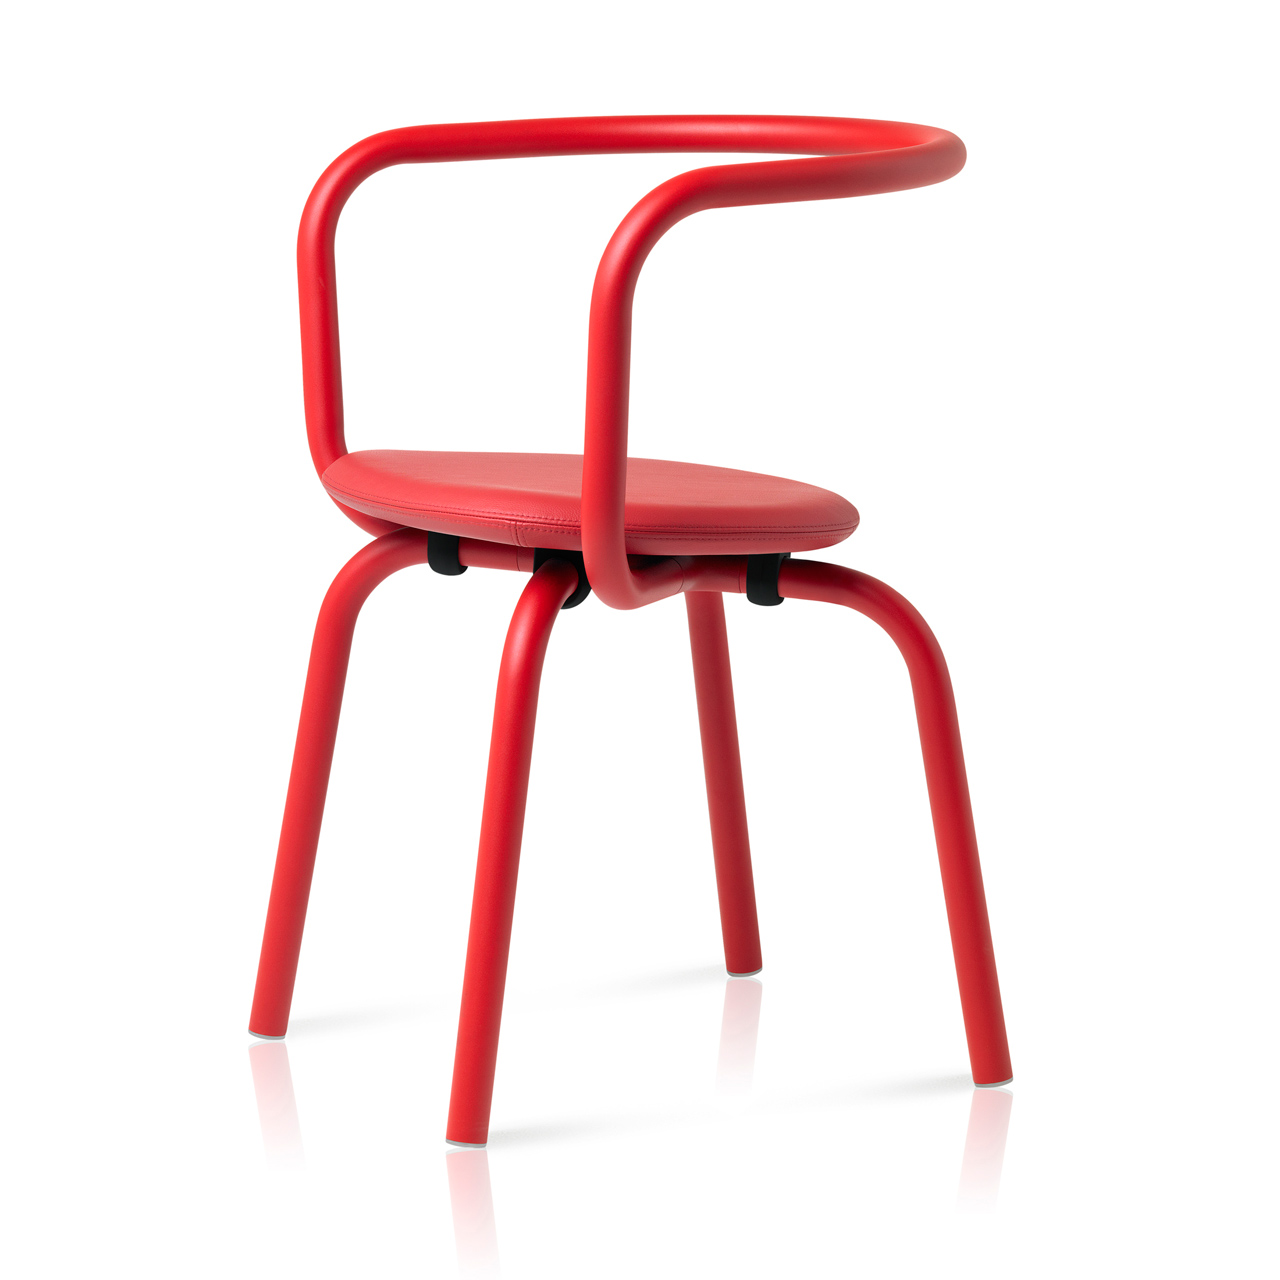 Emeco-Parrish-Chair-by-grcic-5-red